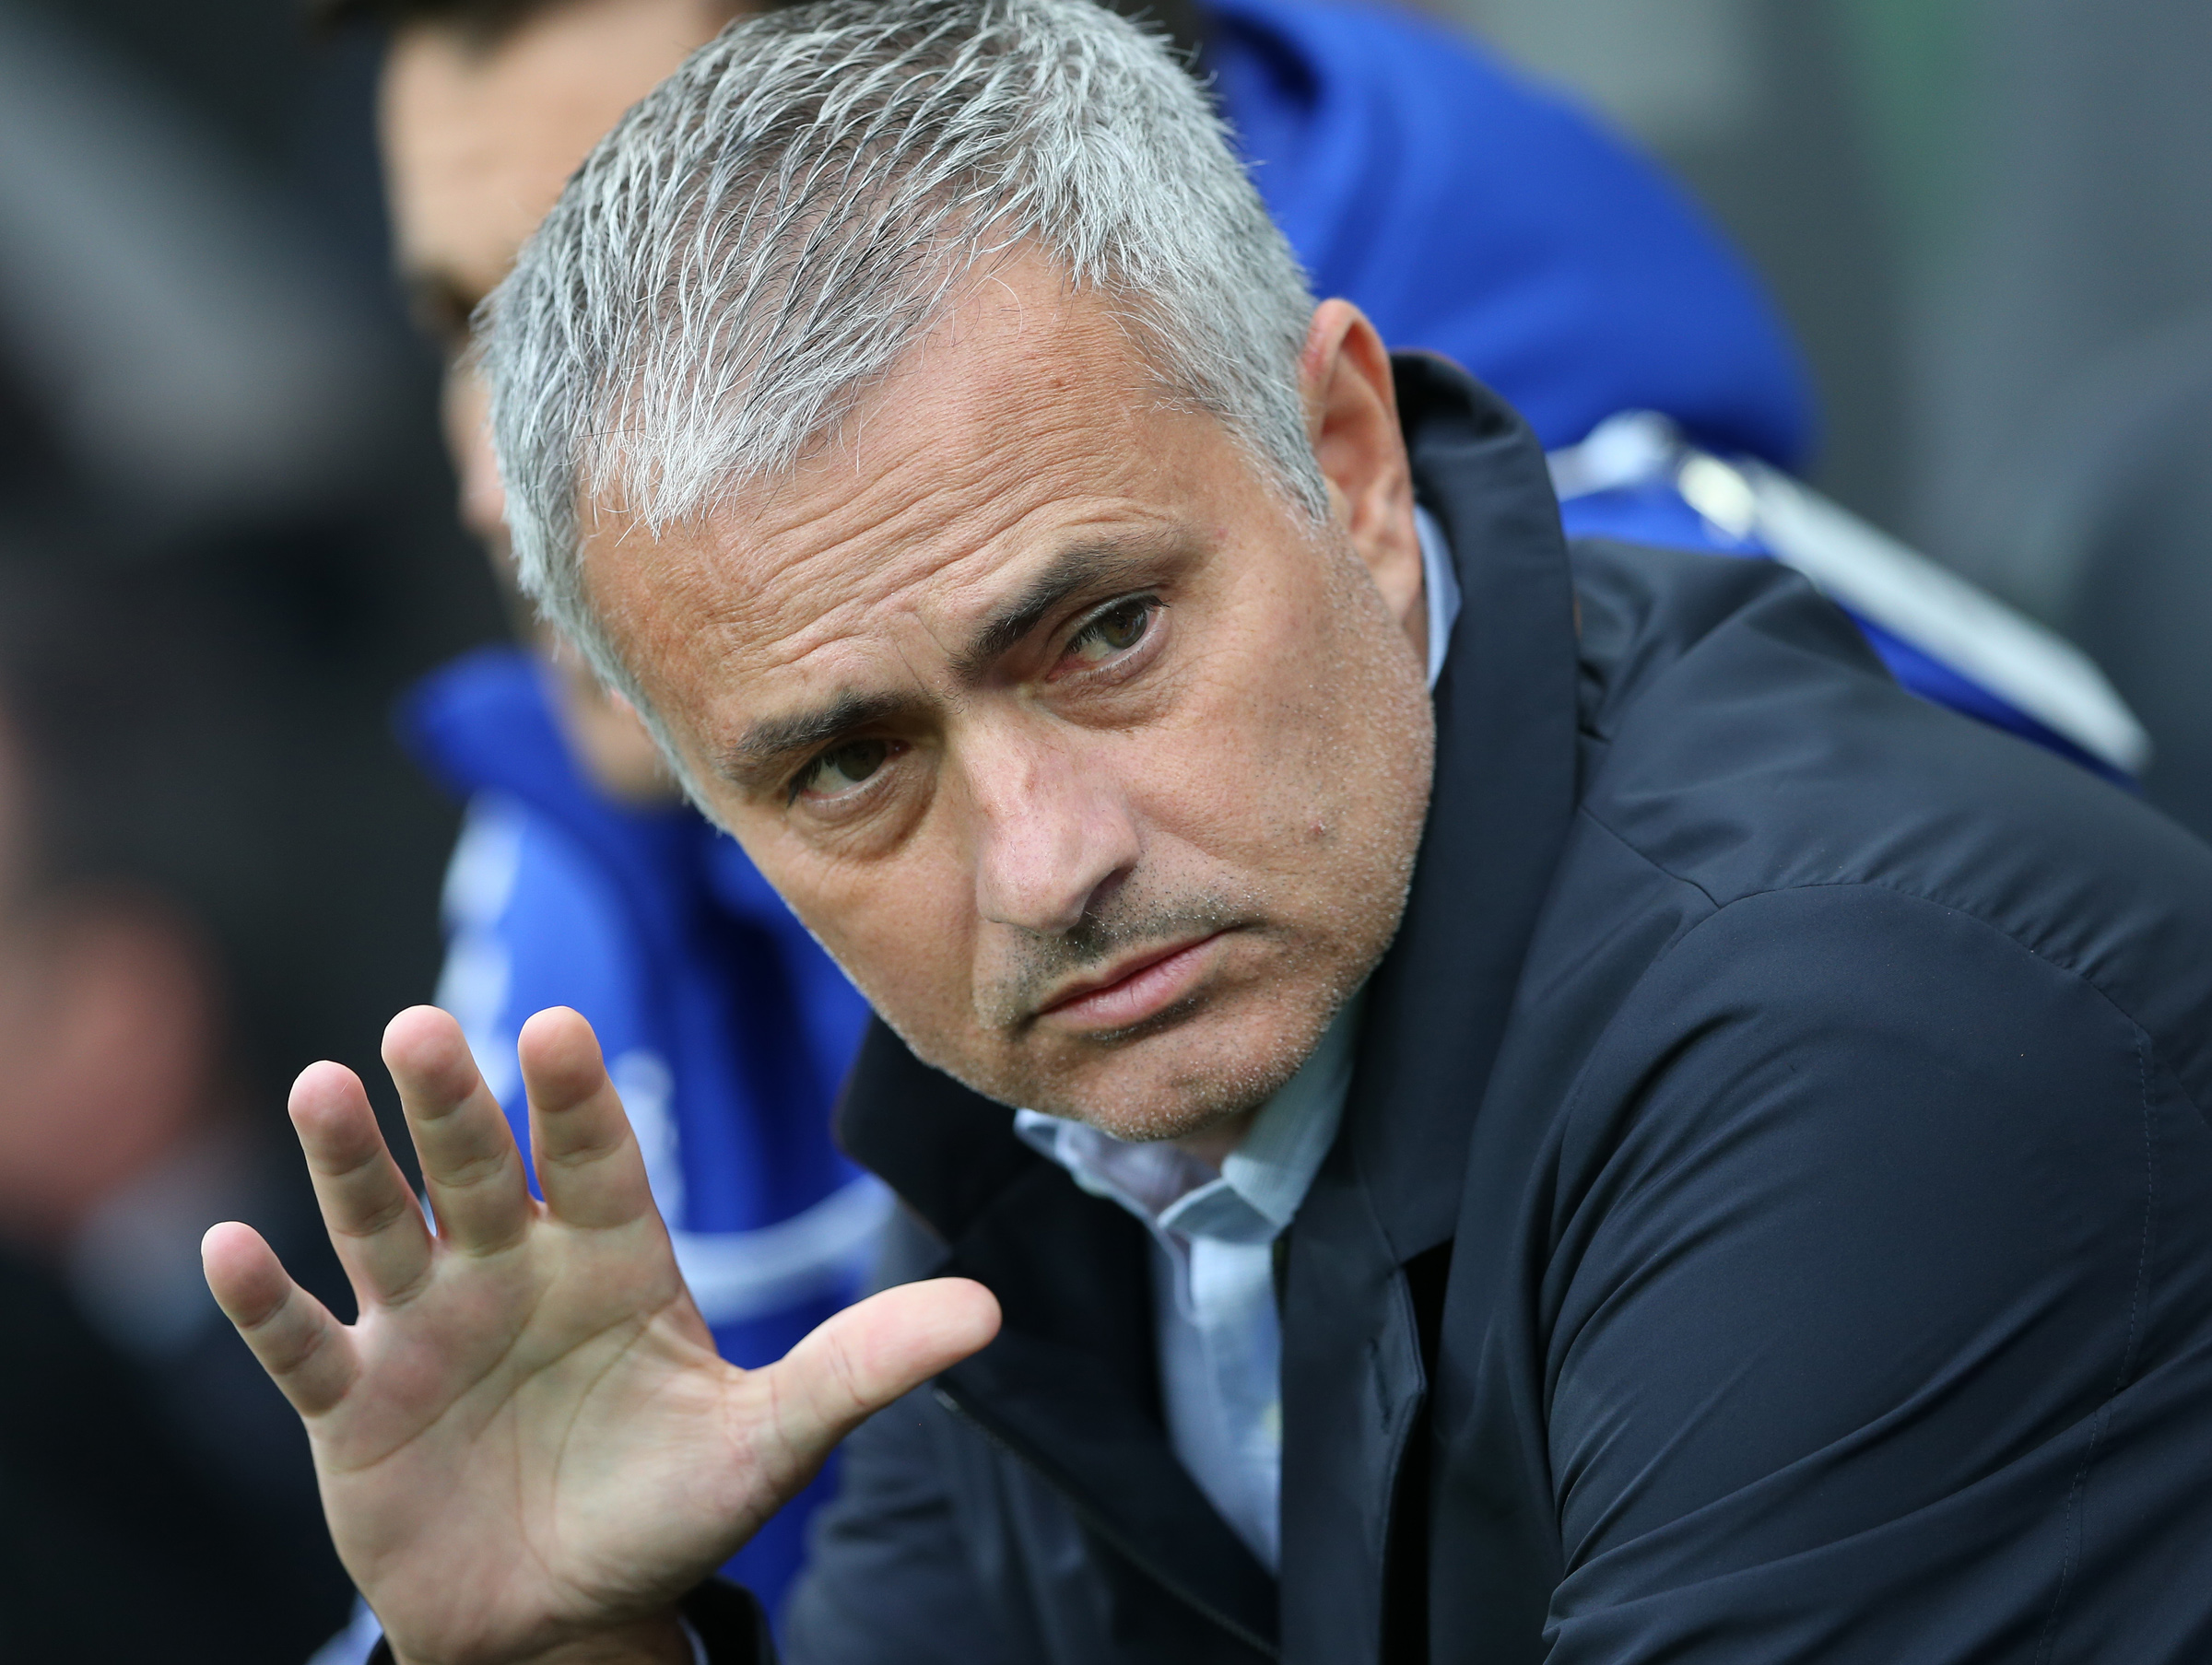 Chelsea's manager Jose Mourinho awaits the start of the English Premier League soccer match between Newcastle United and Chelsea at St James' Park, Newcastle, England, Saturday, Sept. 26, 2015. (AP Photo/Scott Heppell)